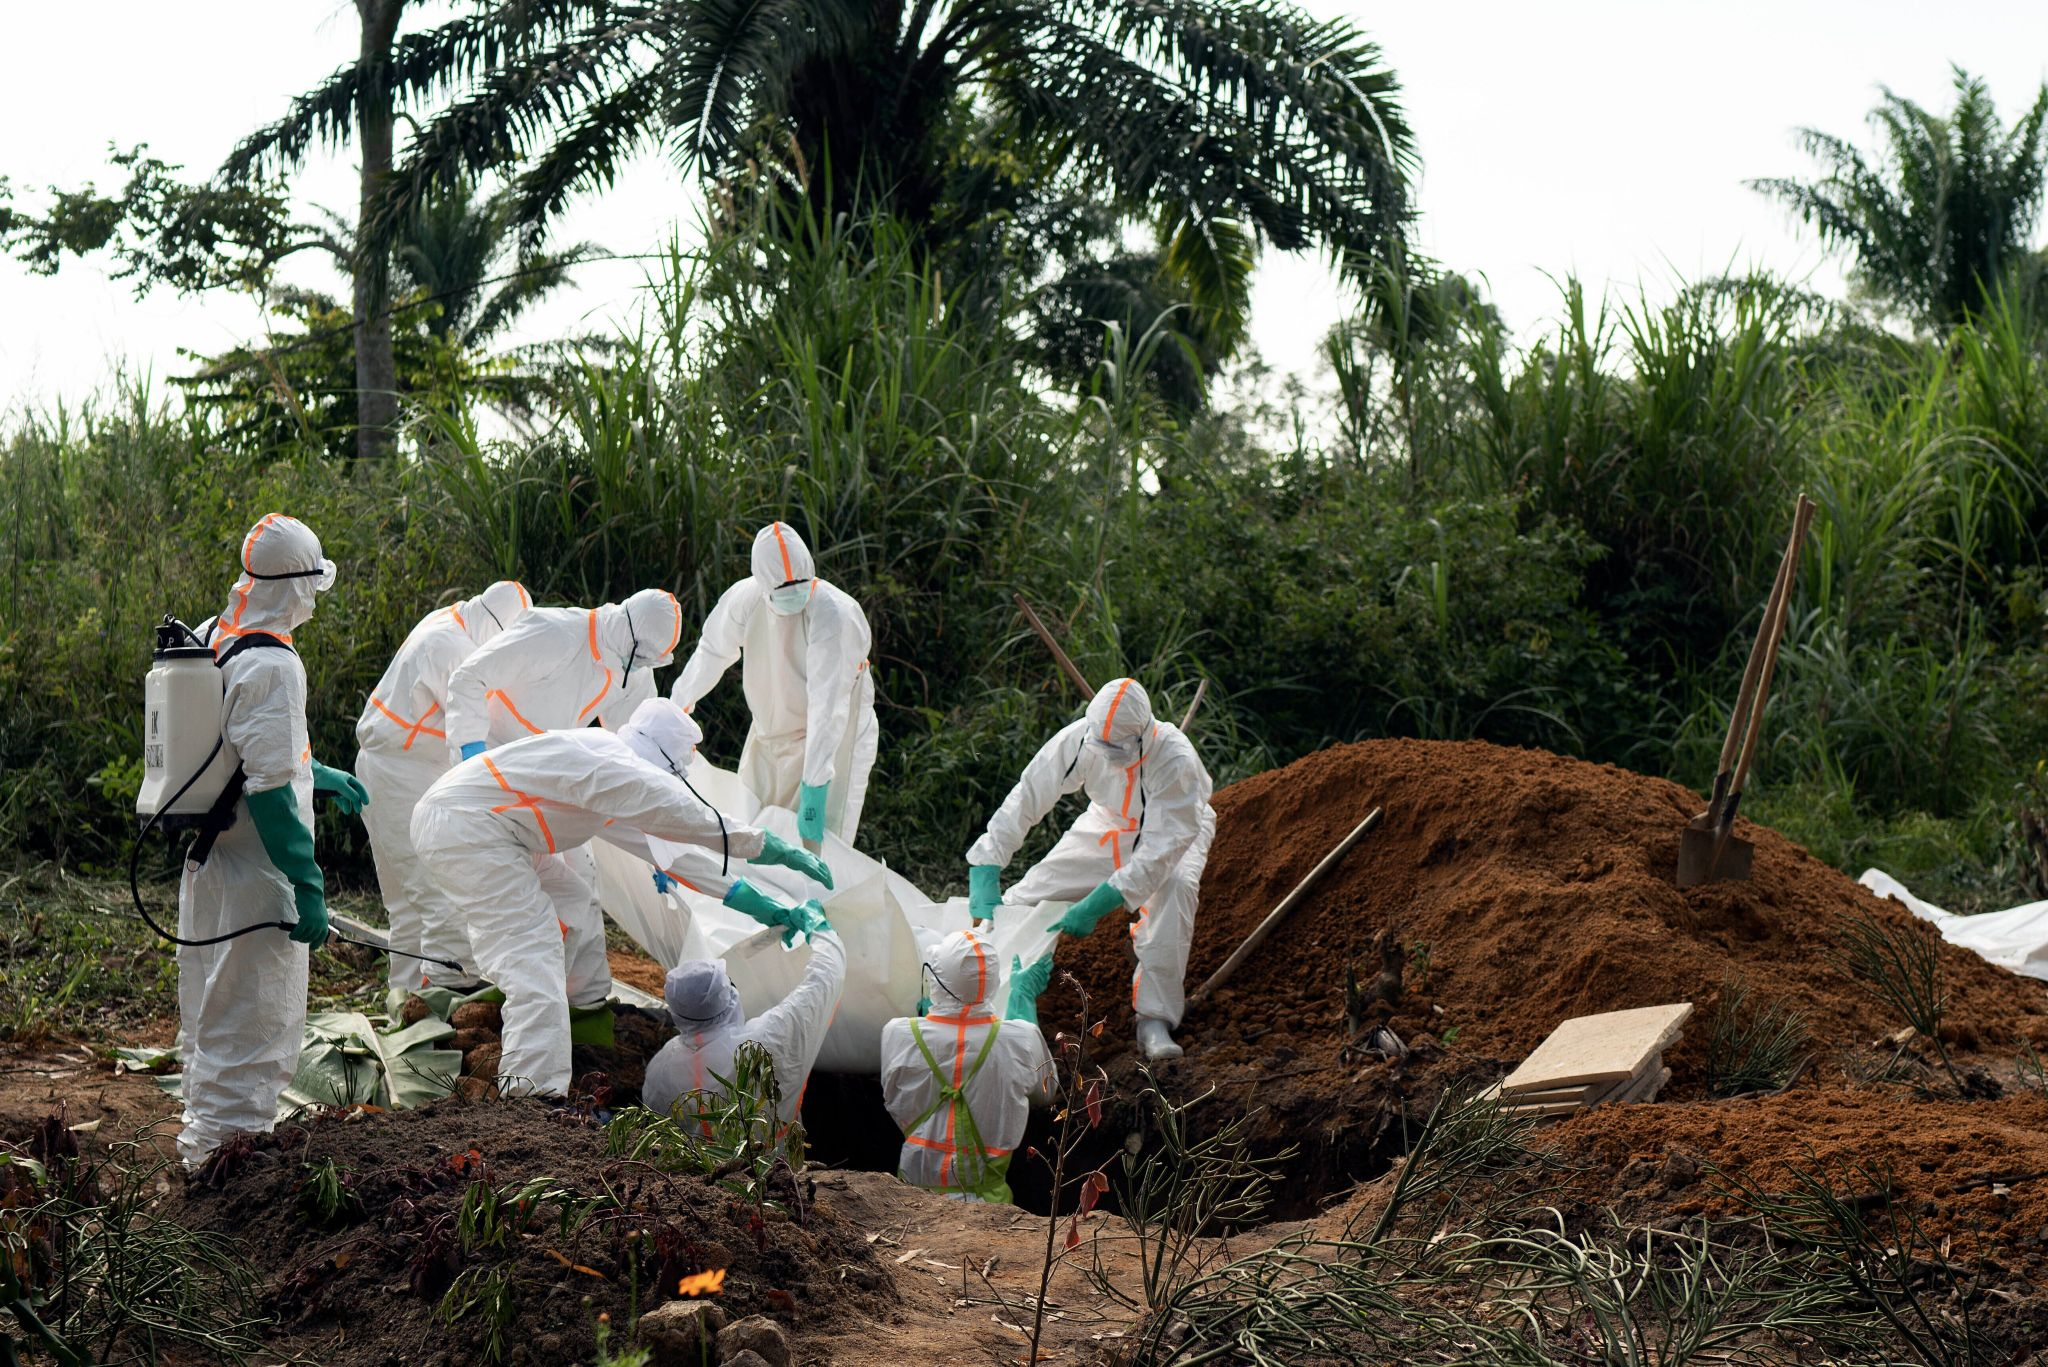 DR Congo: Ebola death toll rises to 1700